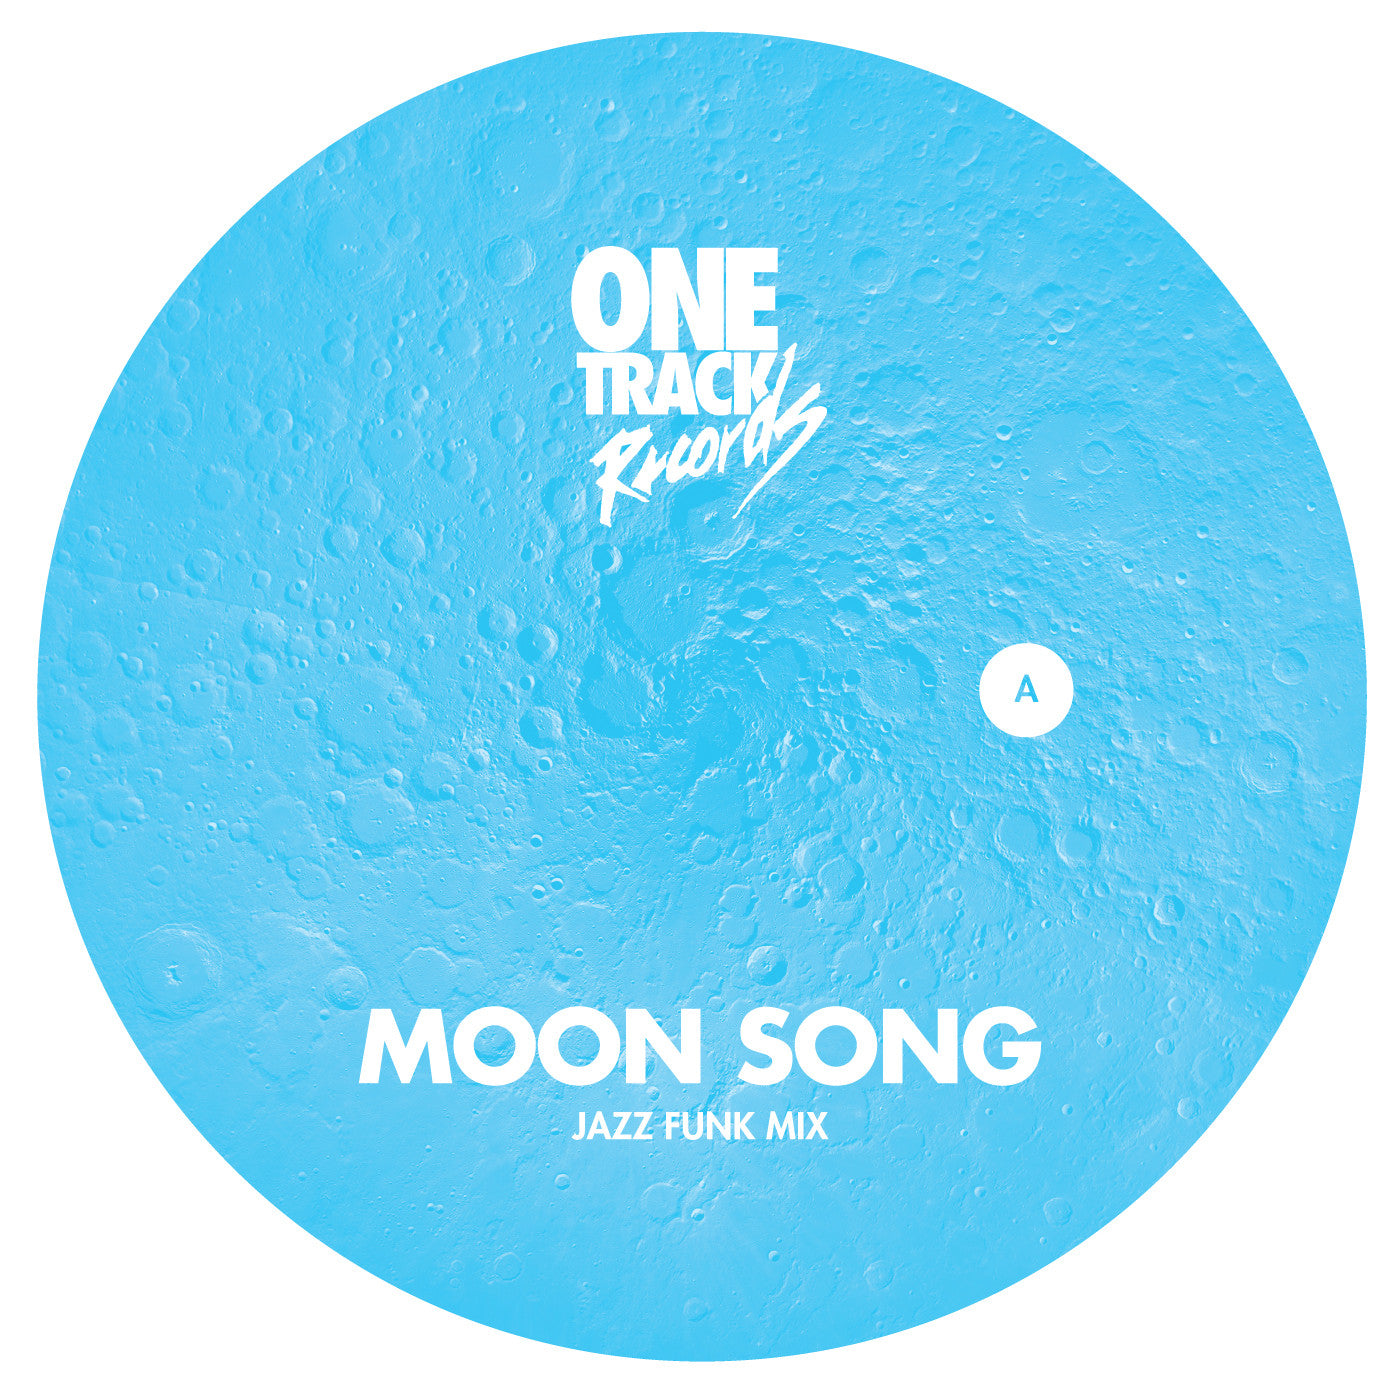 John Daly - Moon Song - Unearthed Sounds